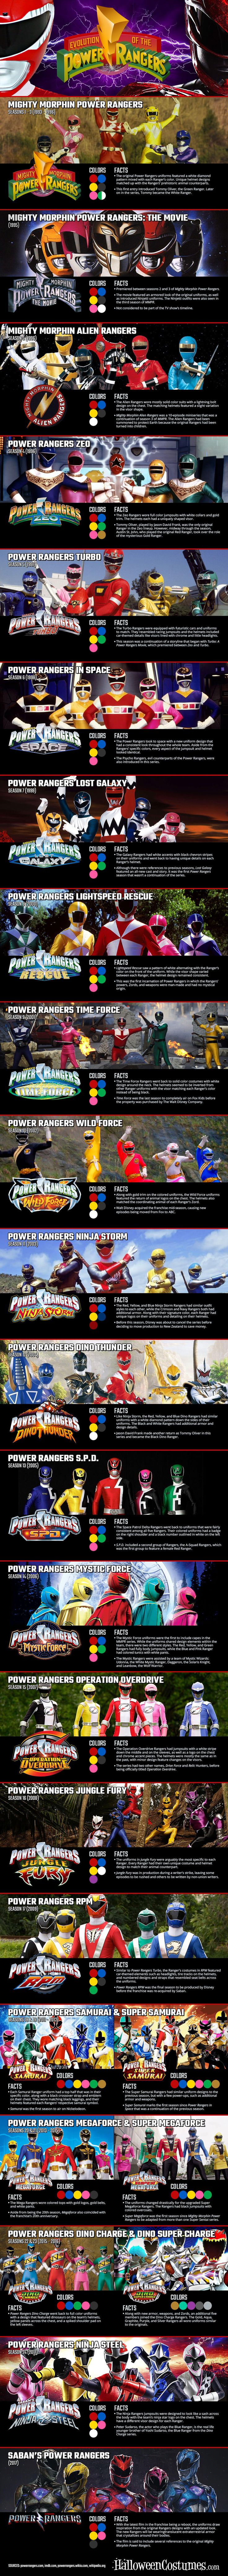 With the new Power Rangers movie opening this week, take a look at all the Power Rangers costumes over time in our infographic!